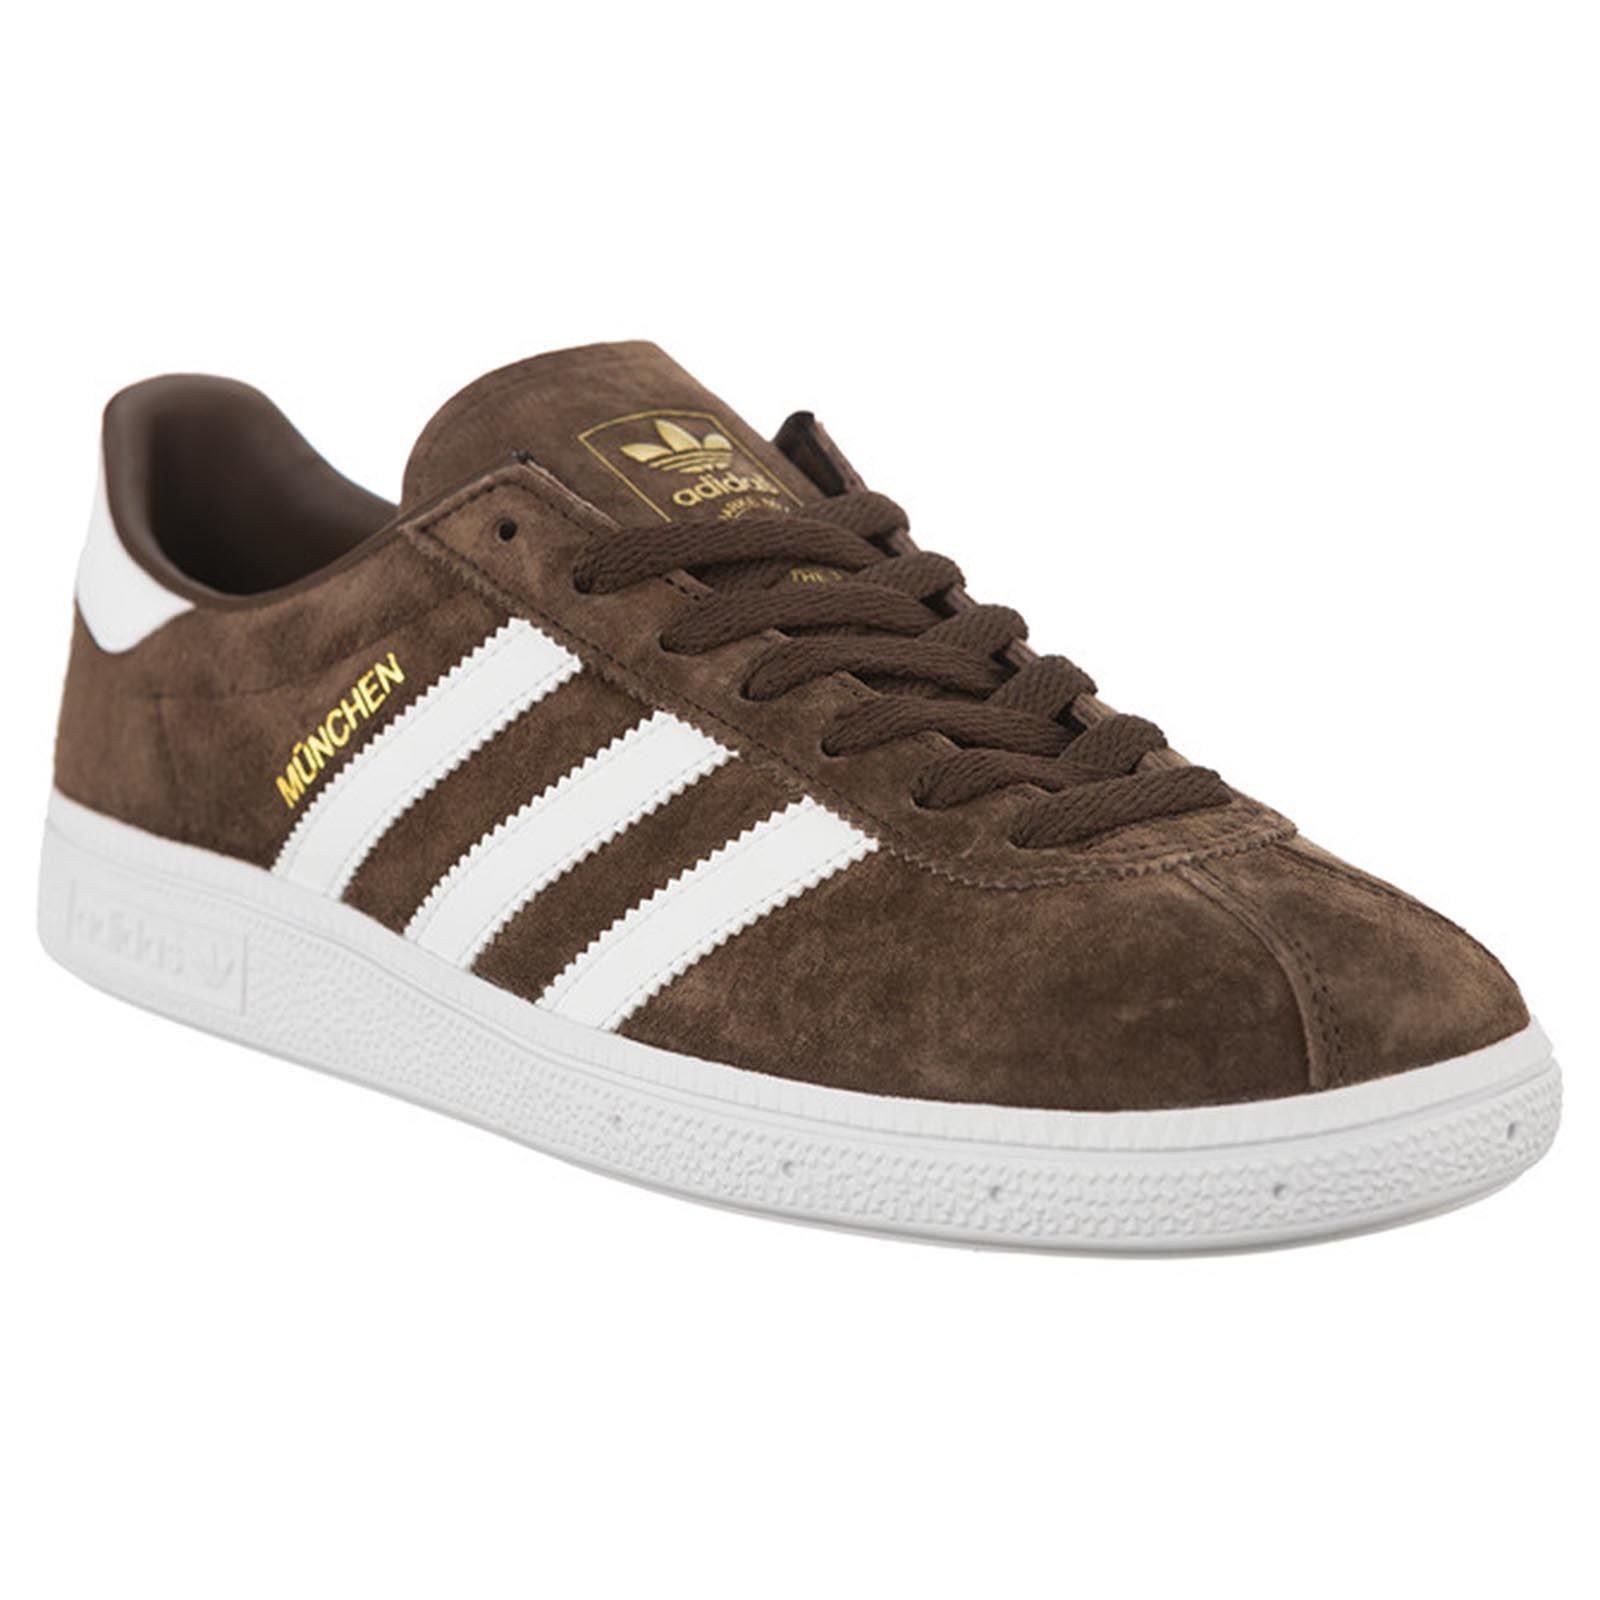 info for 00065 0f46d Adidas Munchen Brown Footwear White Mens Suede Low-top Sneakers Trainers New